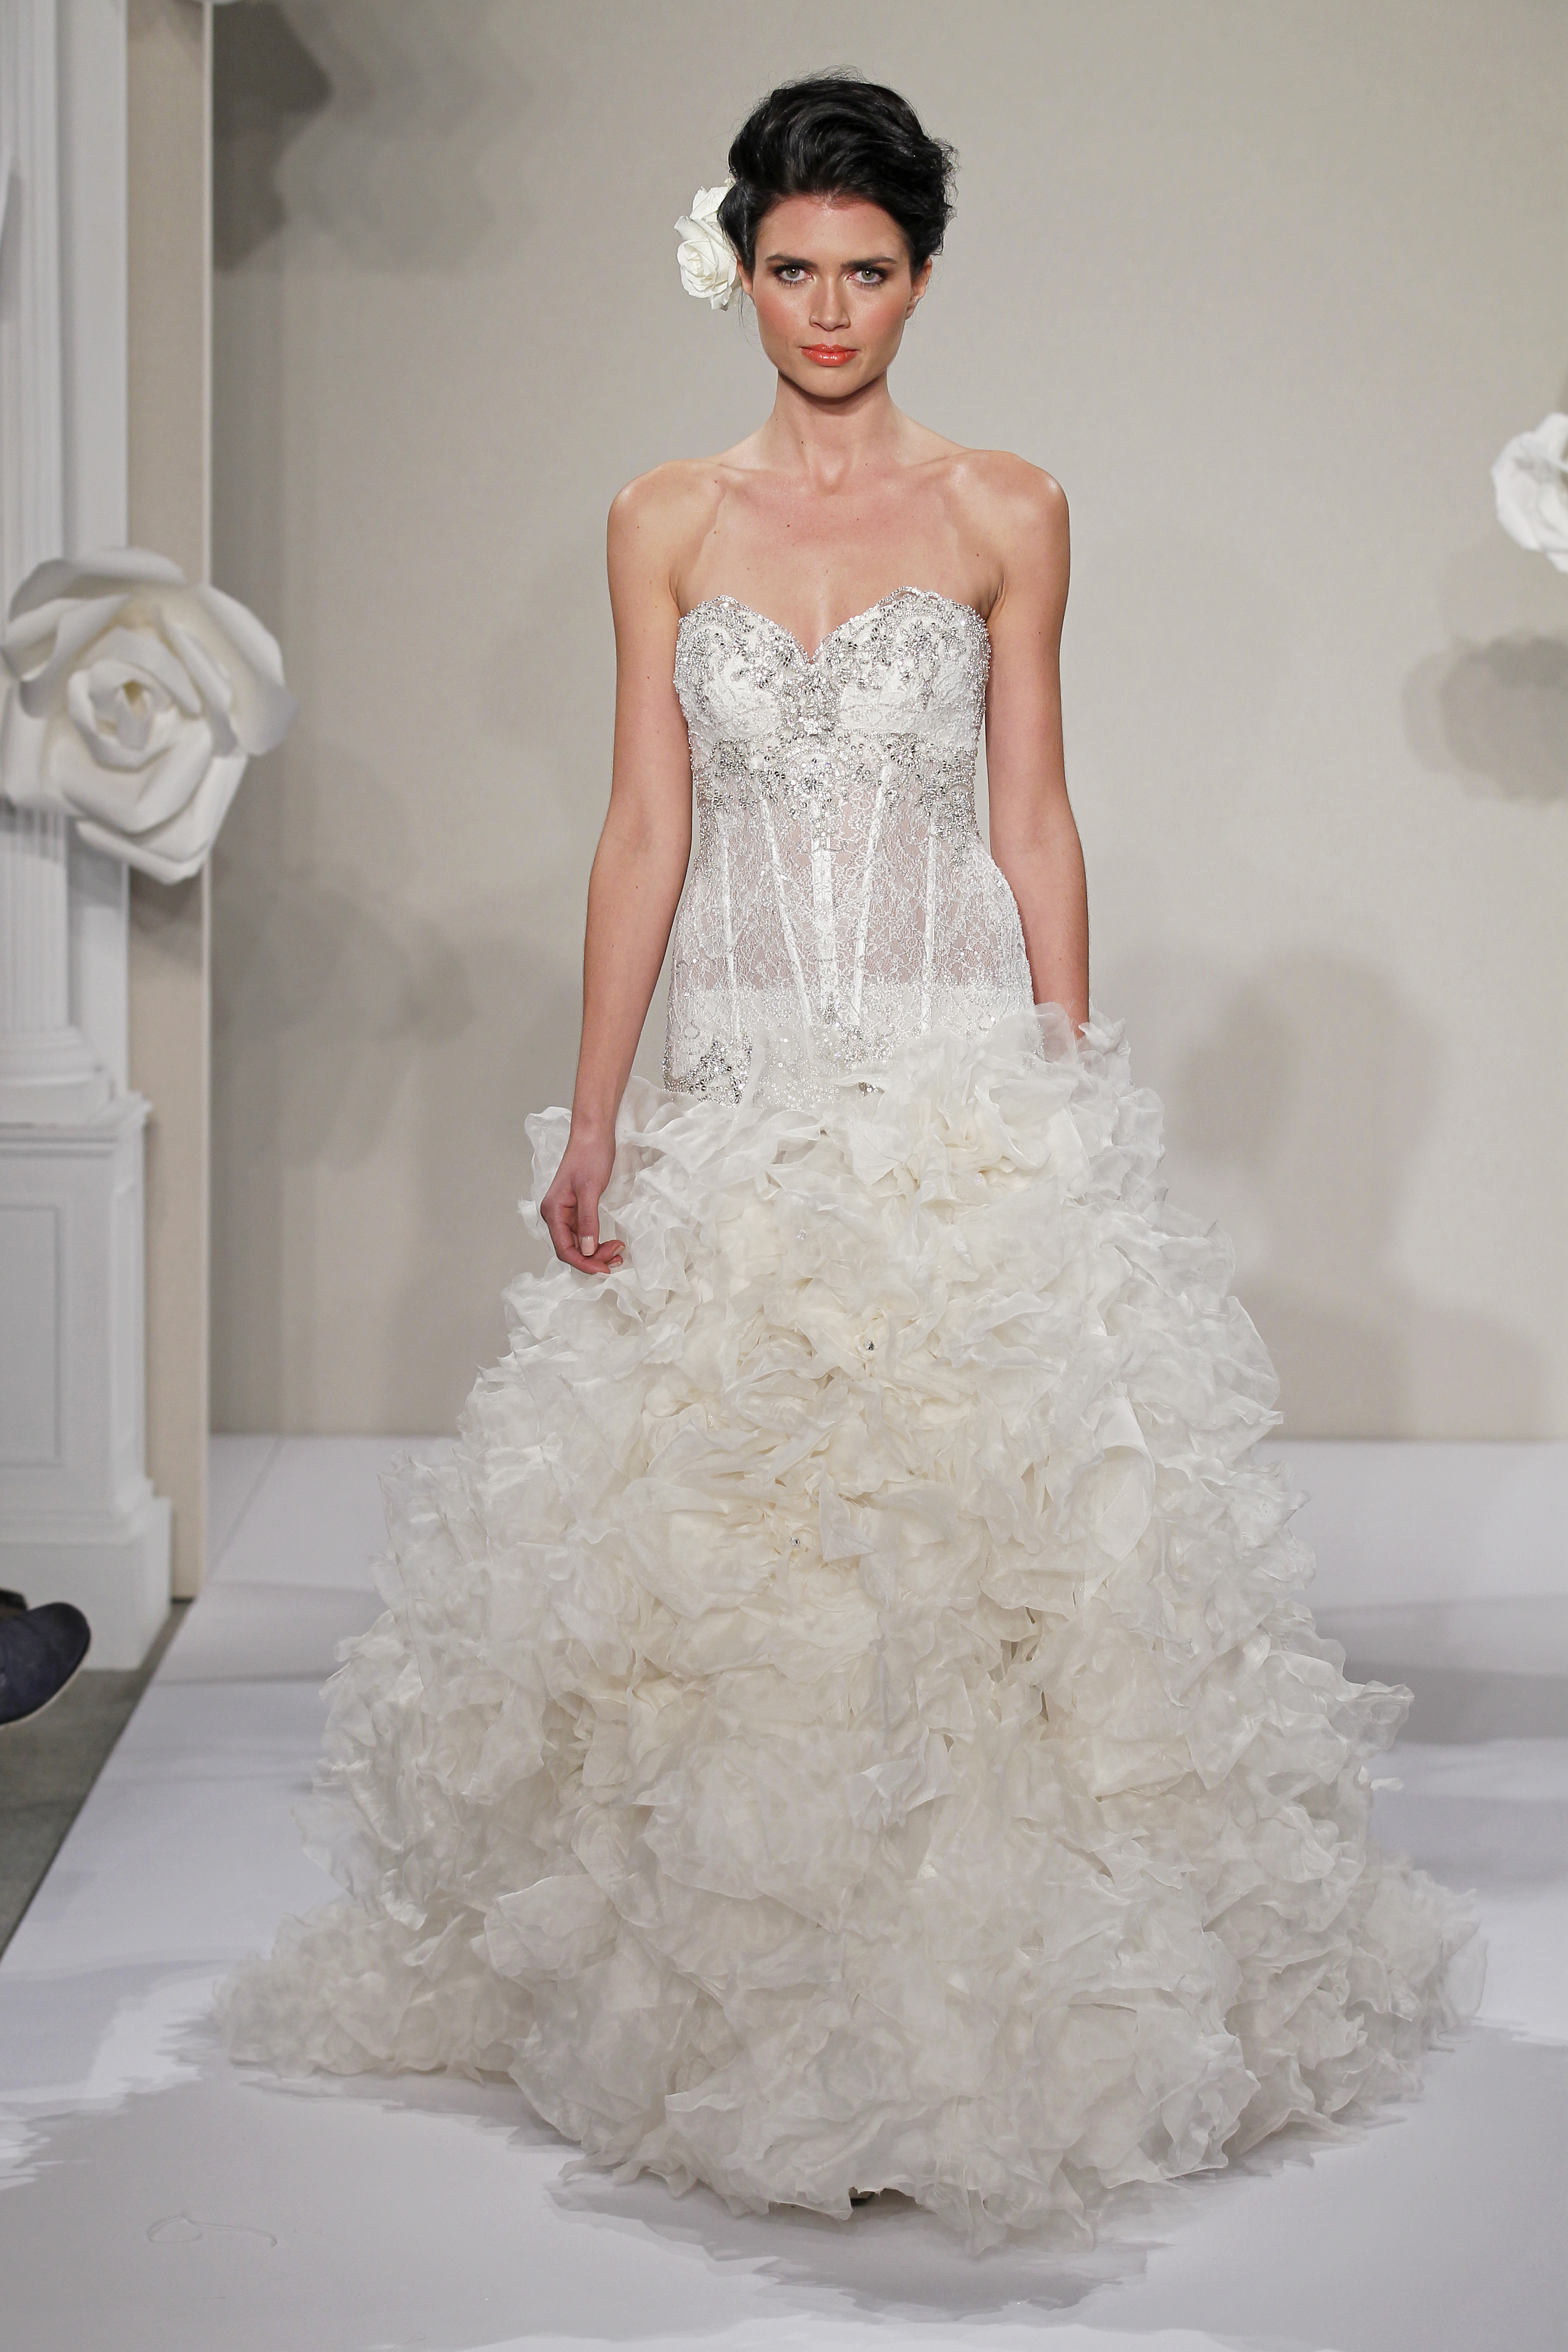 Wedding Dresses, Sweetheart Wedding Dresses, Ball Gown Wedding Dresses, Ruffled Wedding Dresses, Lace Wedding Dresses, Hollywood Glam Wedding Dresses, Fashion, white, ivory, Shabby Chic, Lace, Sweetheart, Beading, Floor, Formal, Ruffles, Hip, Dropped, Sleeveless, Pnina tornai, Ball gown, hollywood glam, Beaded Wedding Dresses, Formal Wedding Dresses, Floor Wedding Dresses, Hip Wedding Dresses, Shabby Chic Wedding Dresses